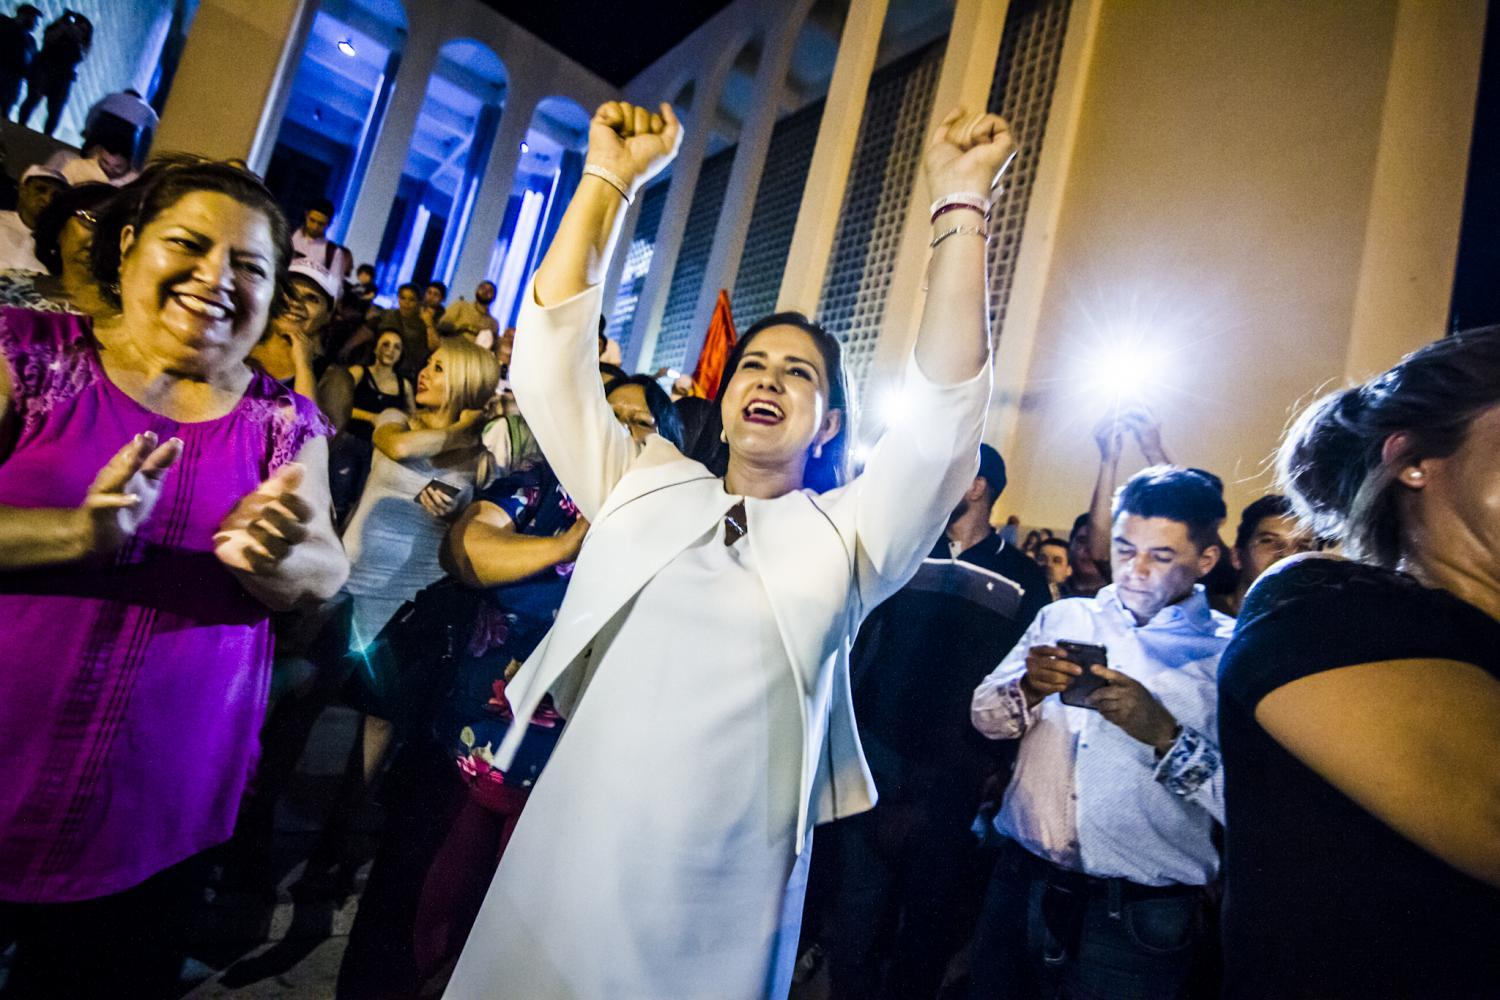 Célida López, Morena candidate for mayor of Hermosillo, celebrates her success on election night.